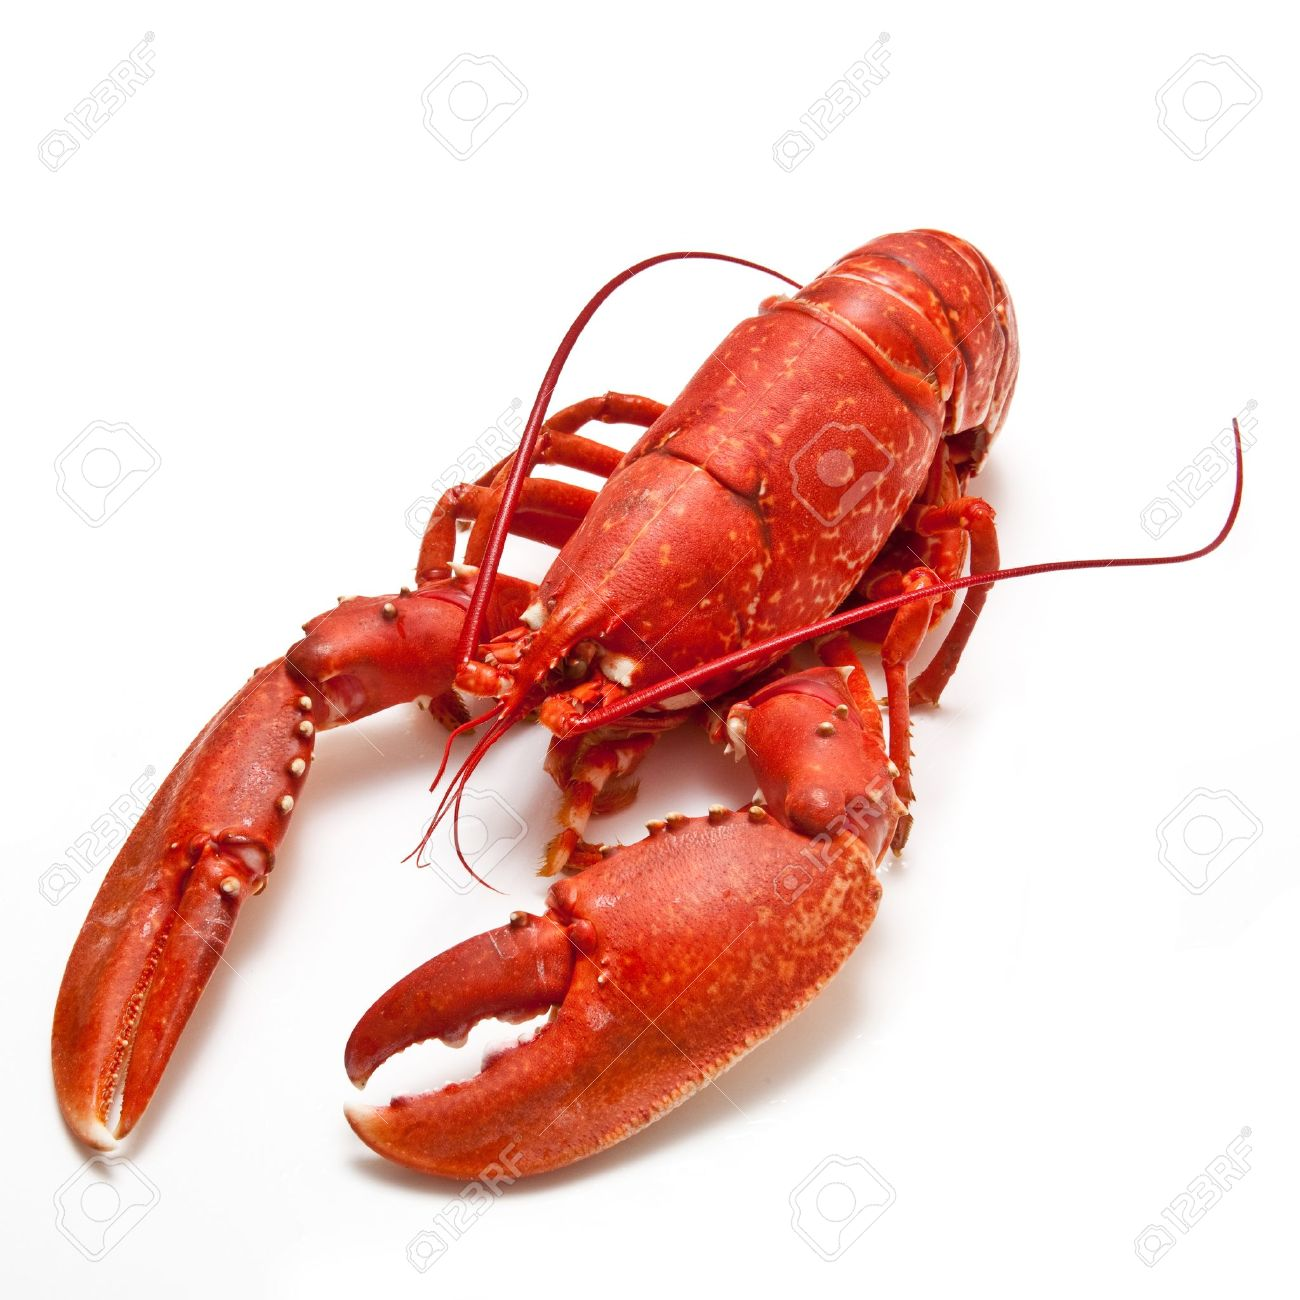 56398ea.png - Lobster HD PNG